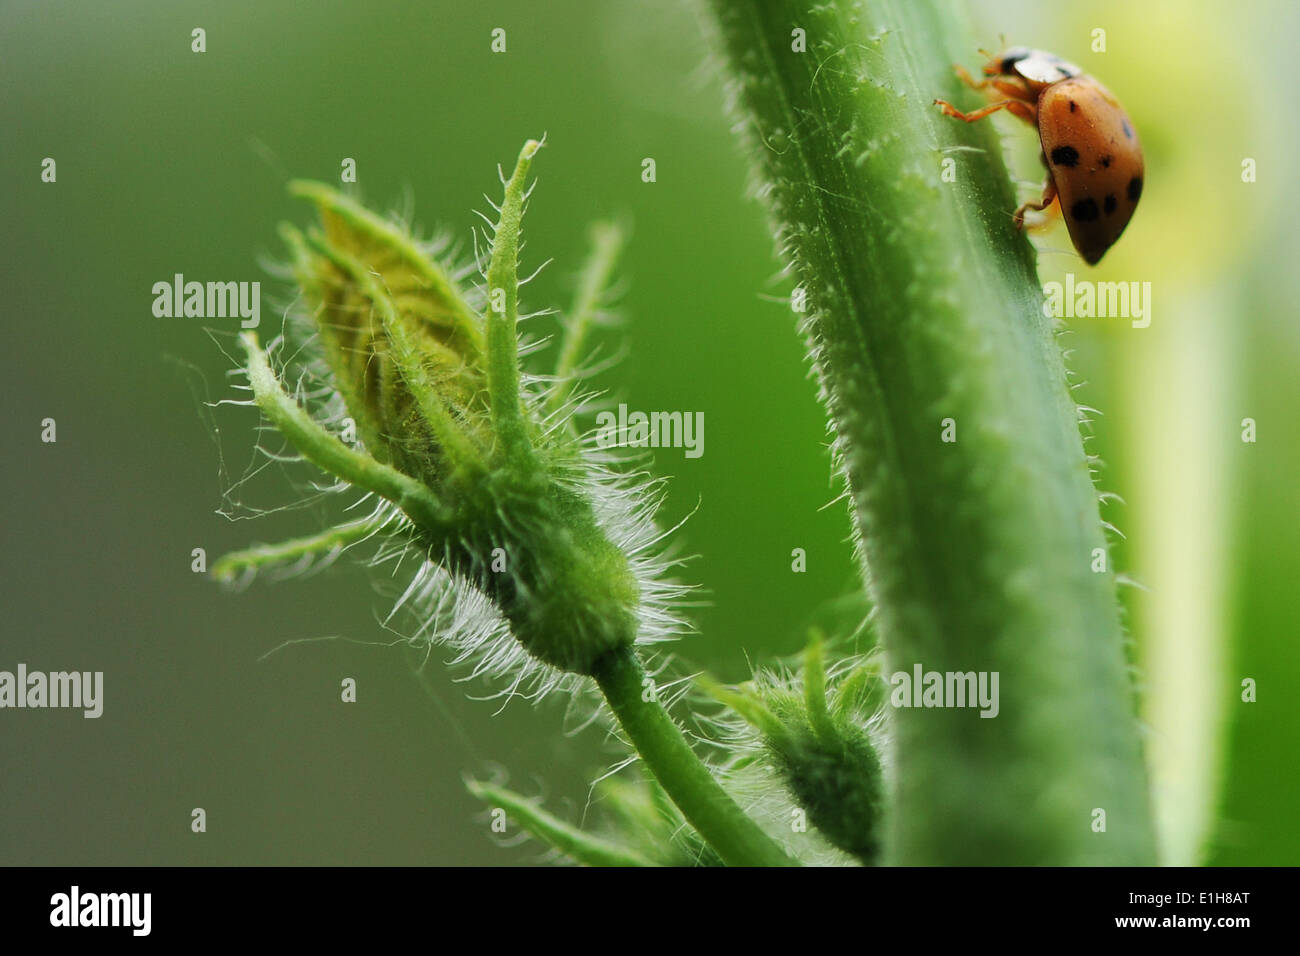 Close up of beetle crawling up flower stem - Stock Image